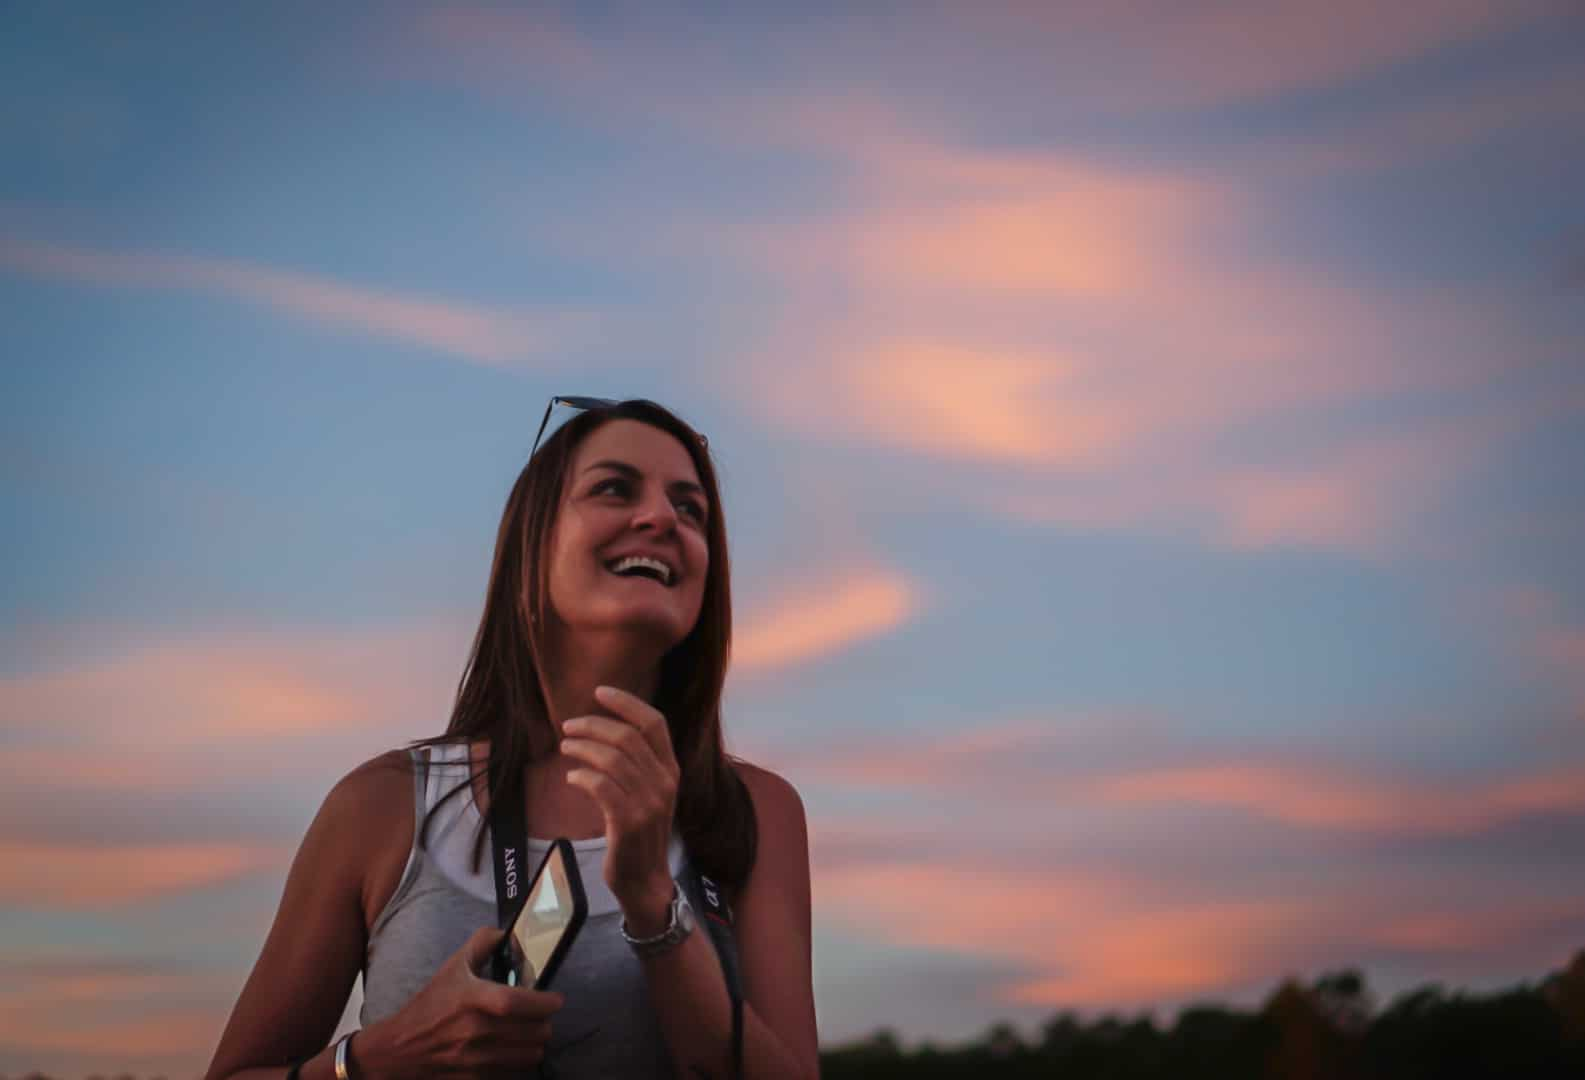 Portrait of Carole Dupre at sunset with blue sky and pink clouds, Clarks Hill Lake in South Carolina.